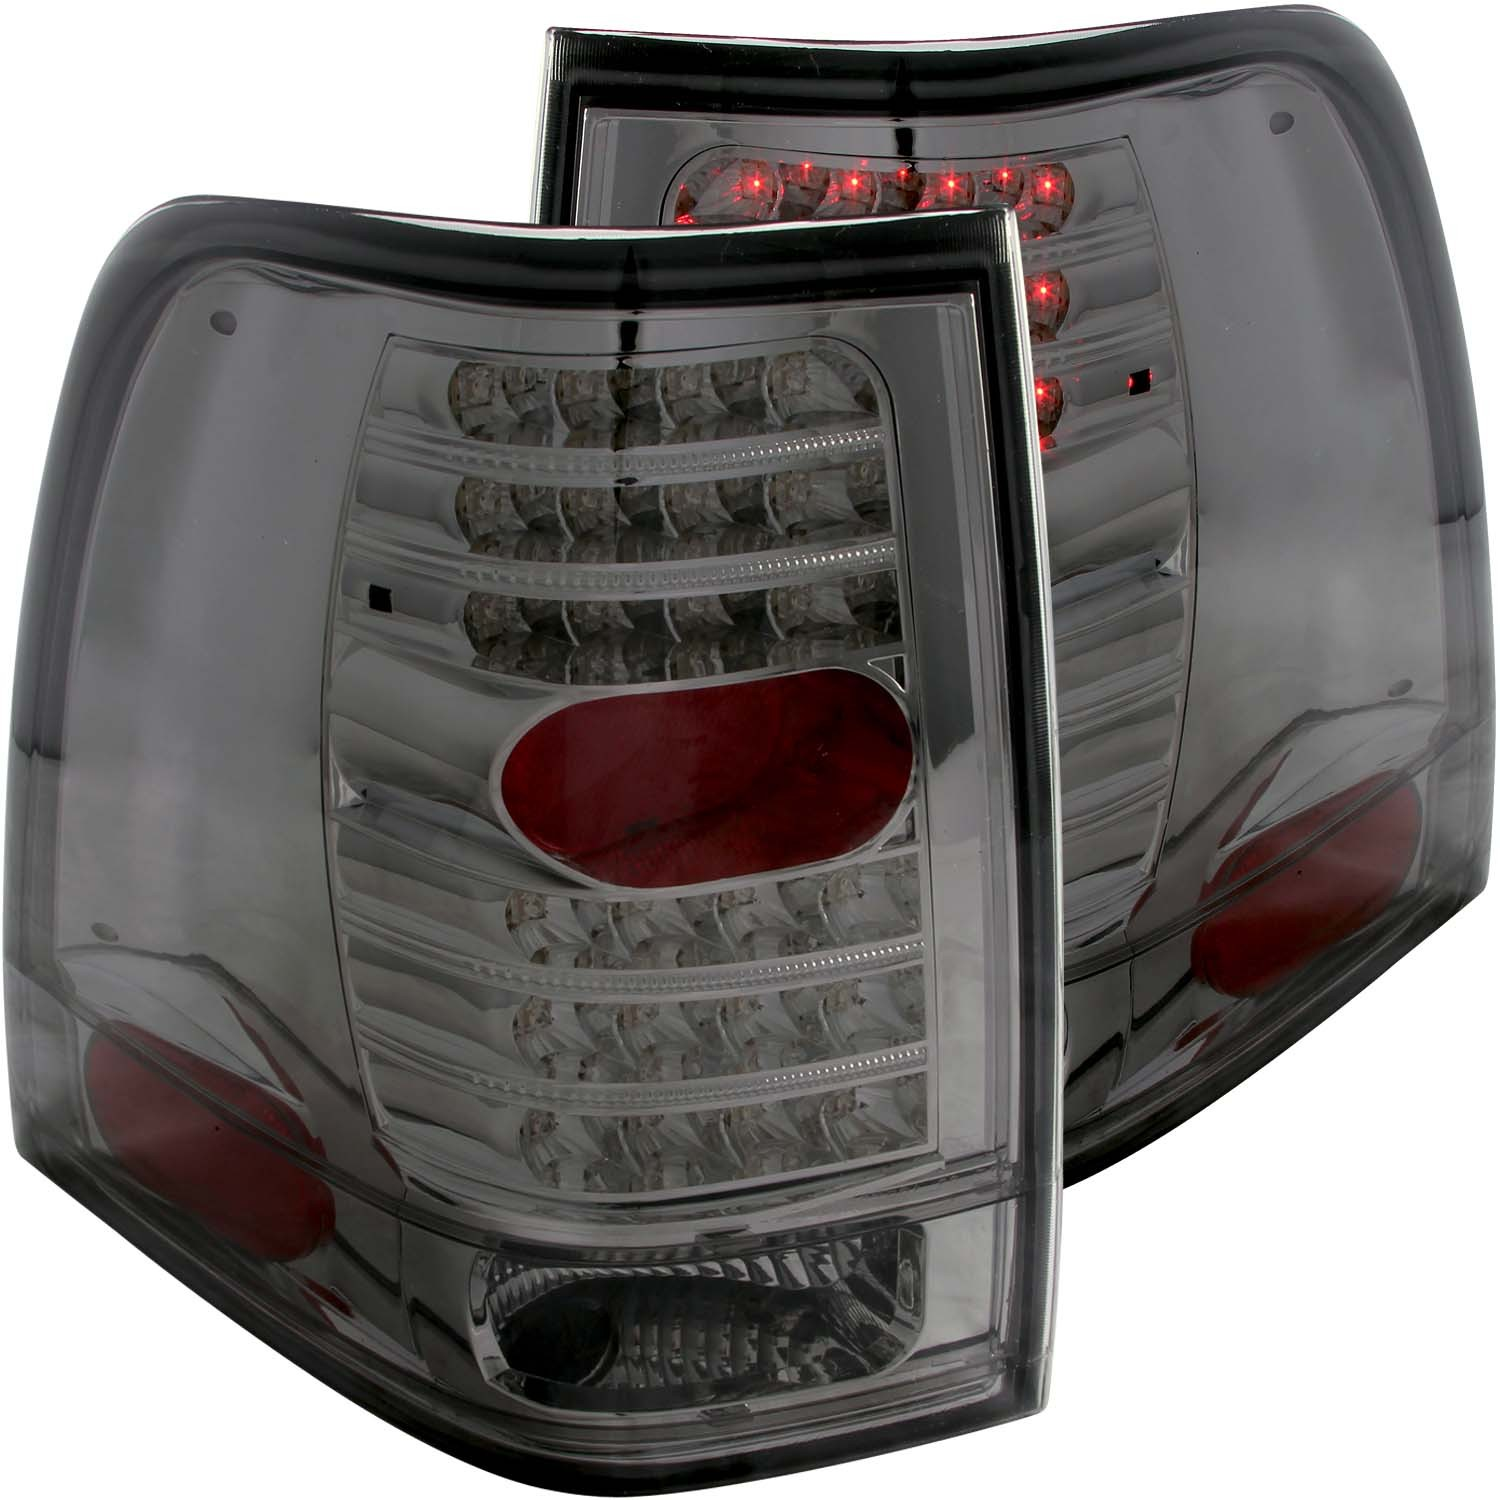 Details About Fits 2003 06 Ford Expedition Tail Light Rear Left Driver Right Penger Side